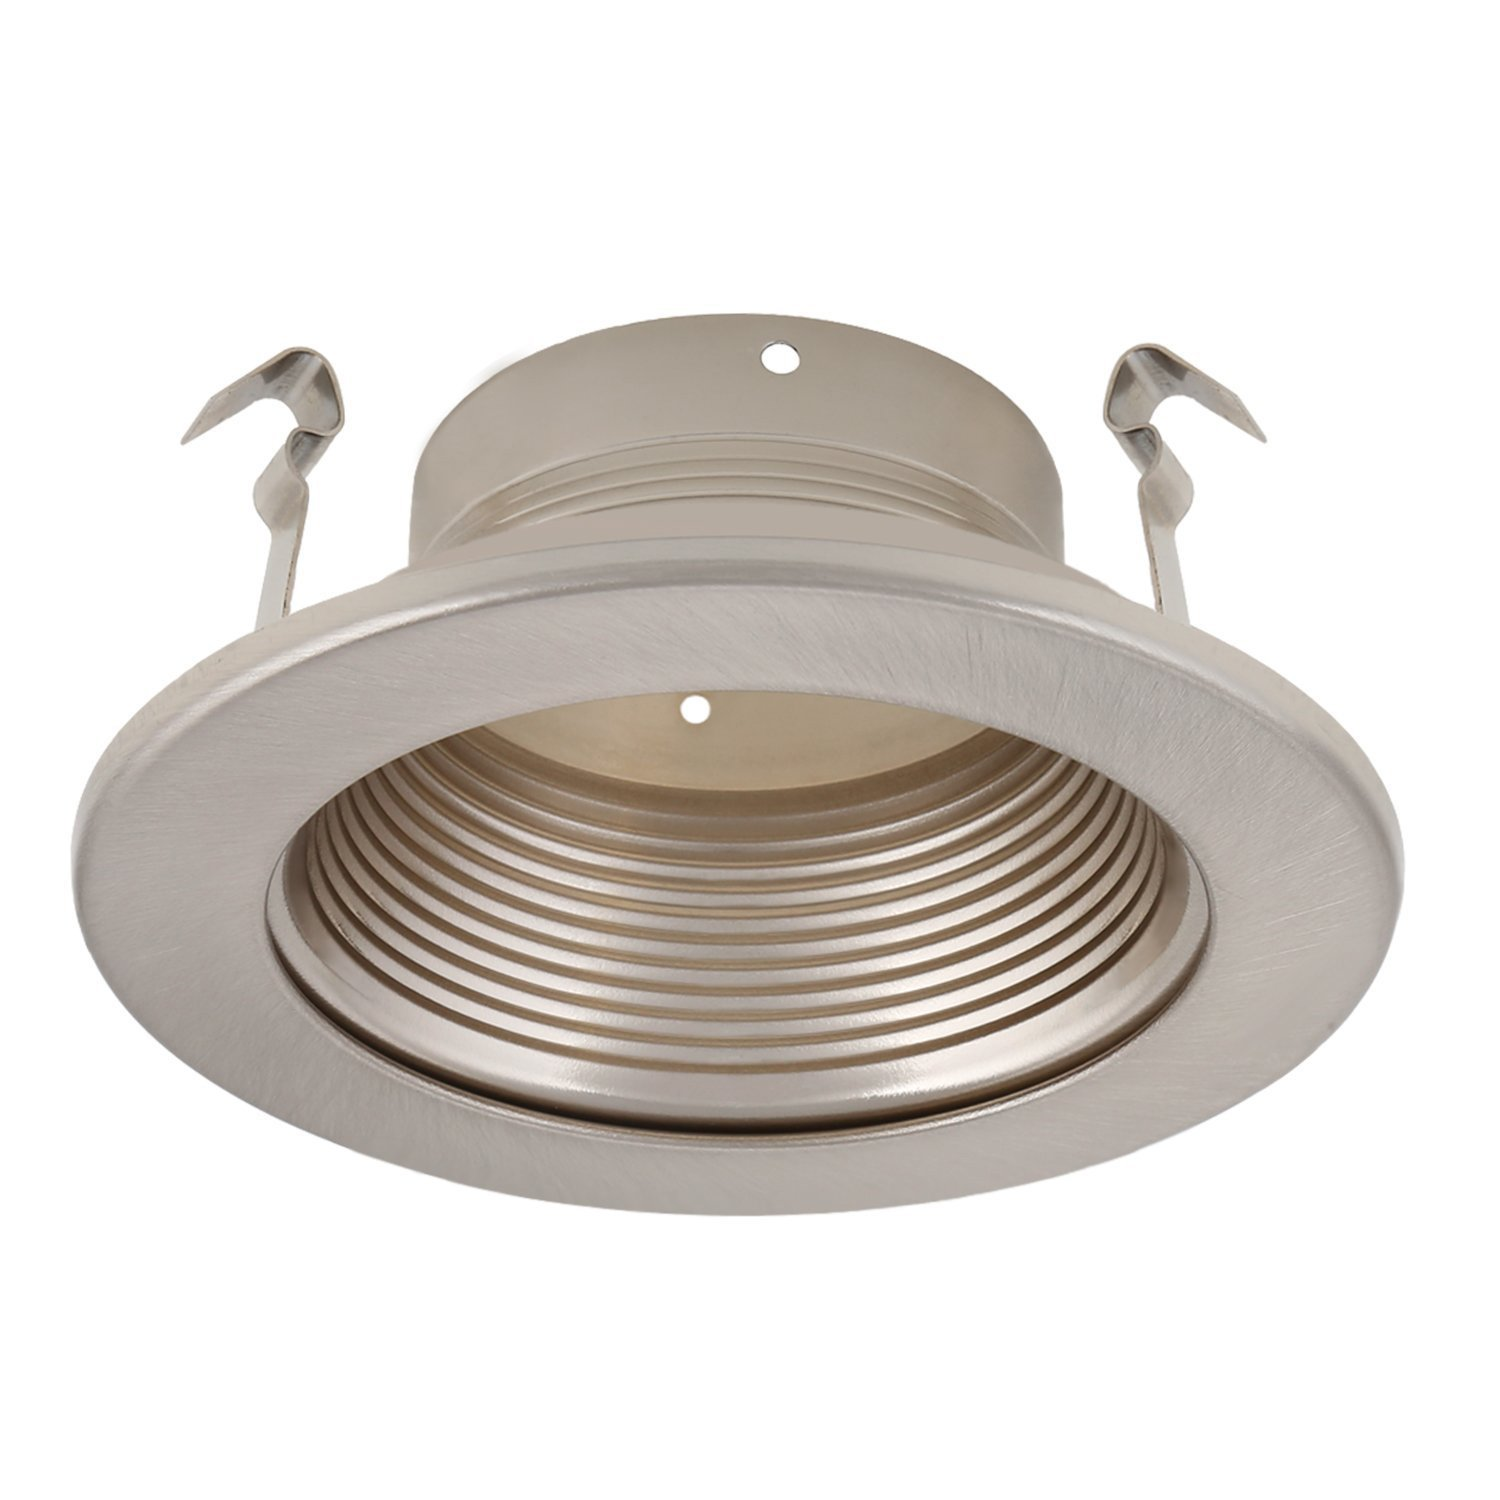 Get Quotations 4 Inch Recessed Can Light Trim With Satin Nickel Metal Step Baffle For